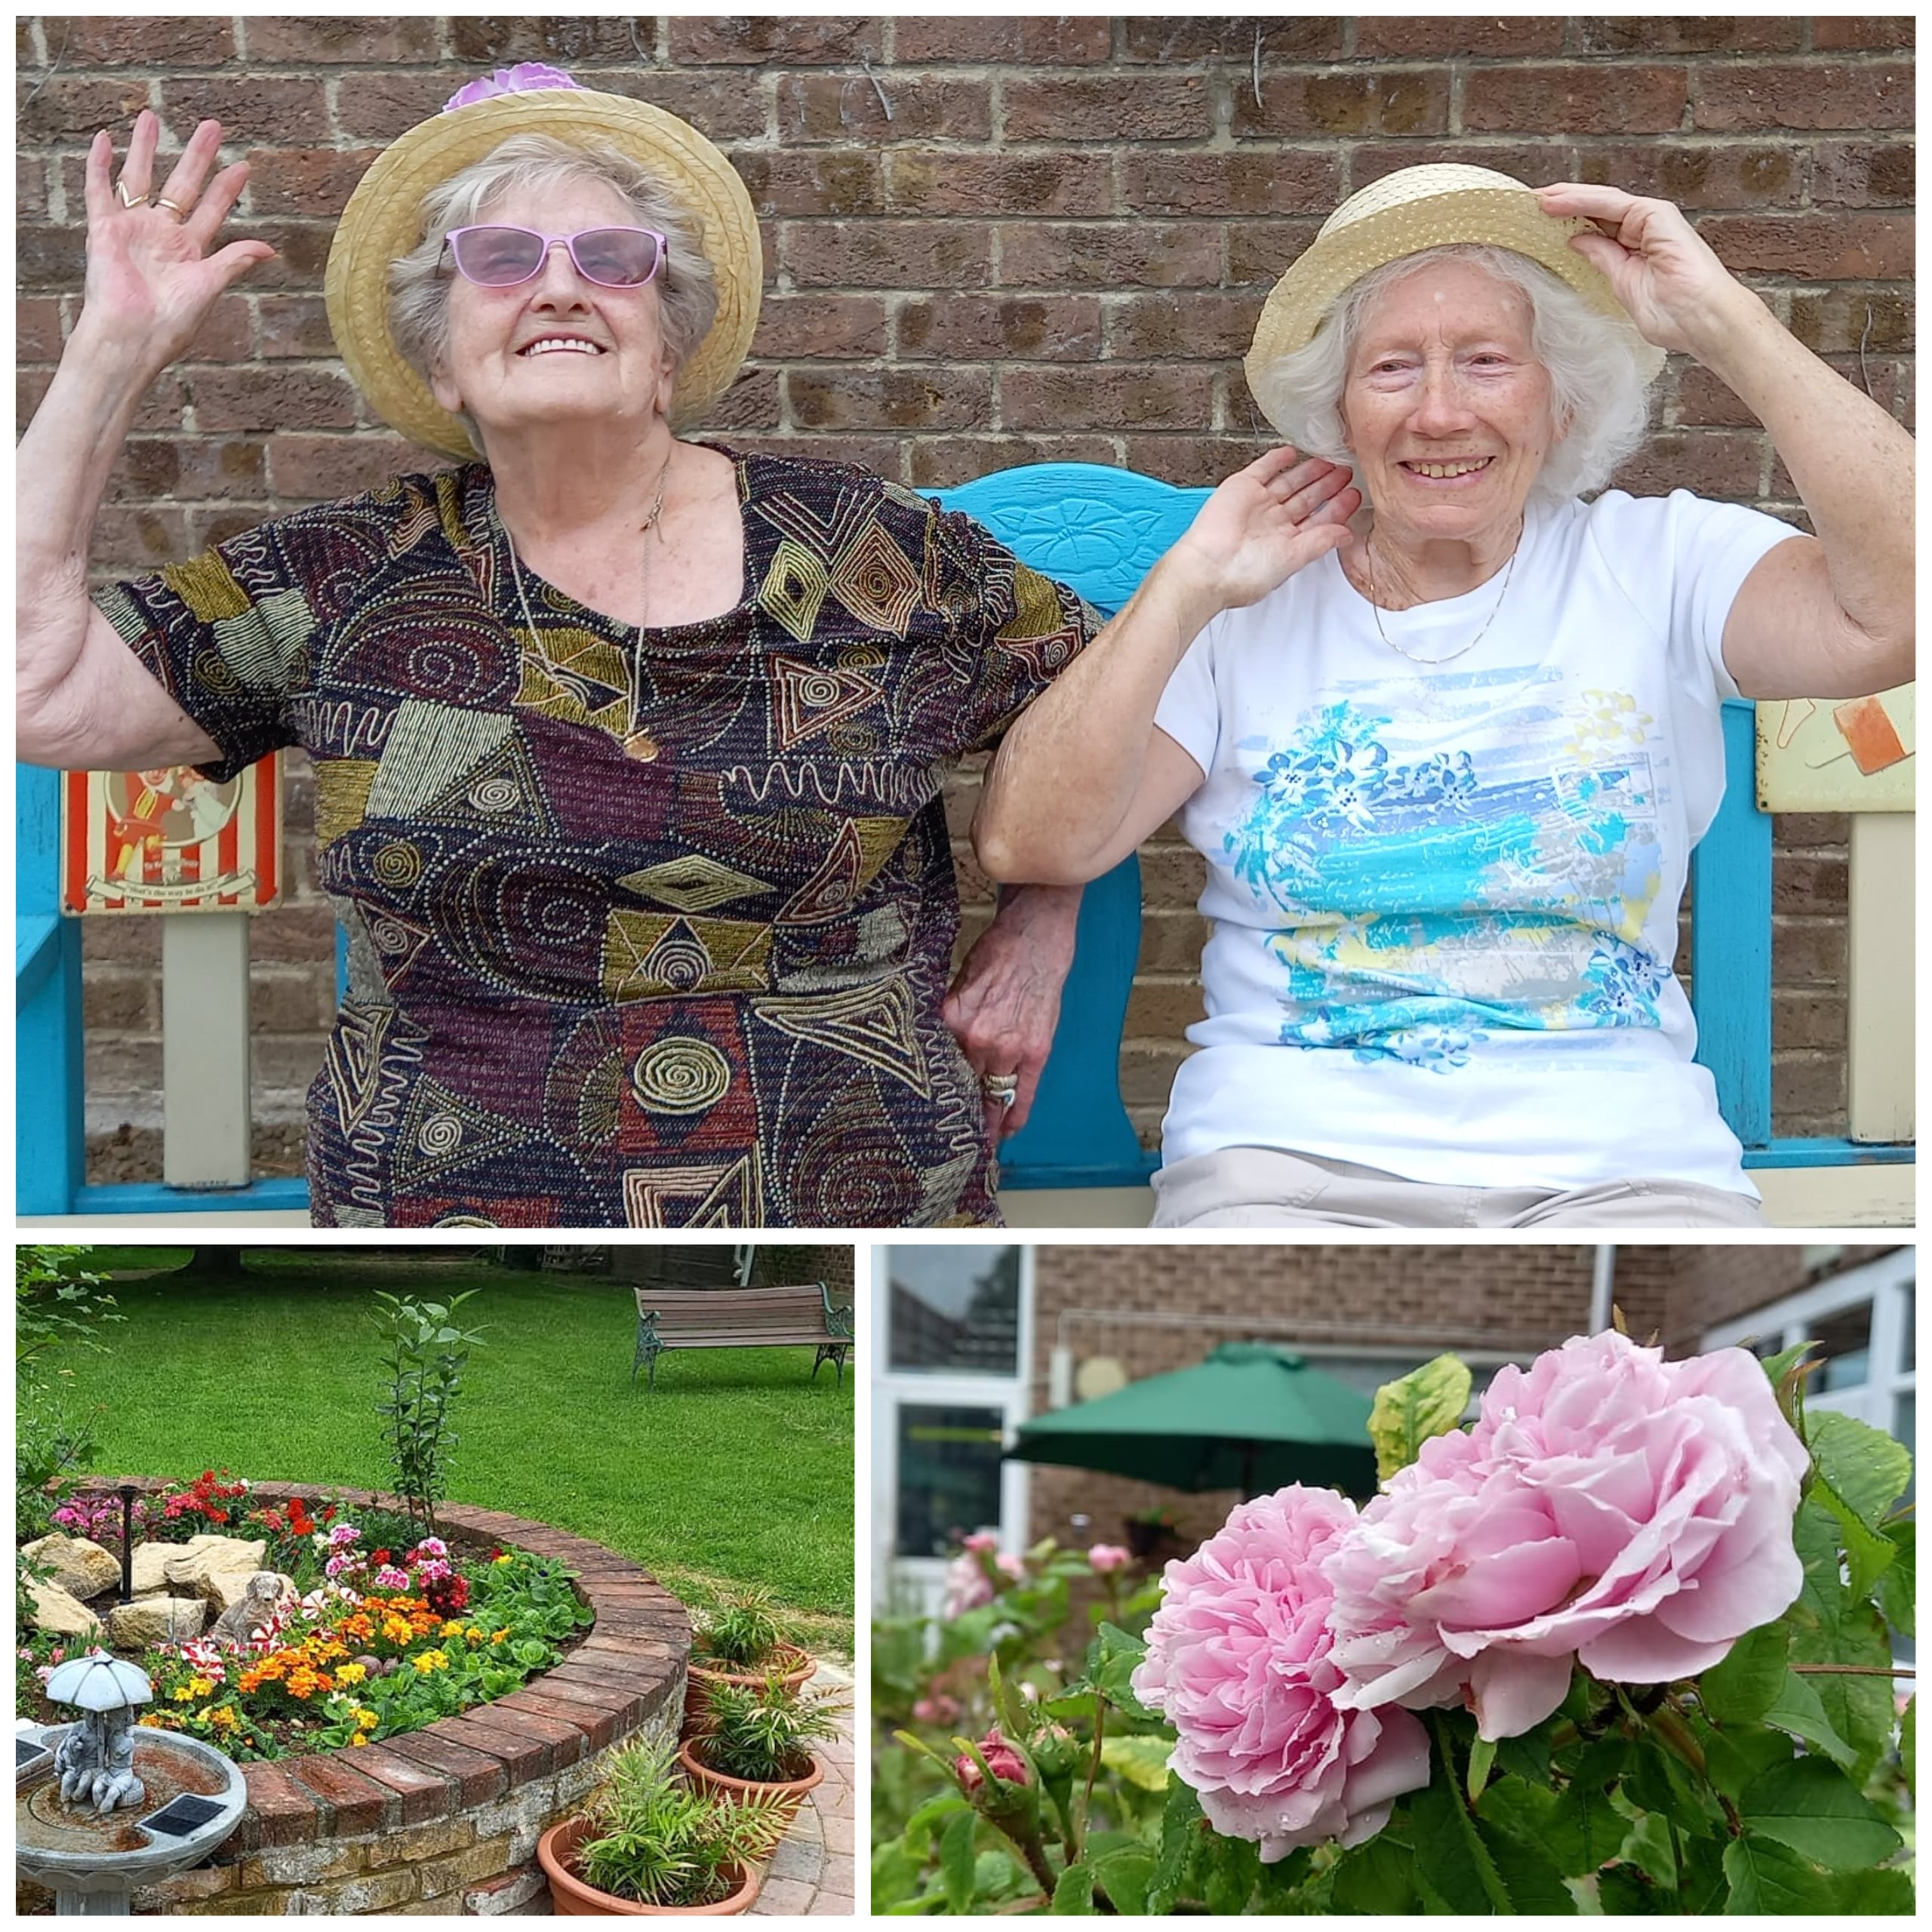 Basildon care home residents 80-year-old Joyce Roberts and 85-year-old Eileen Knock in their straw hats in the Mundy House garden.